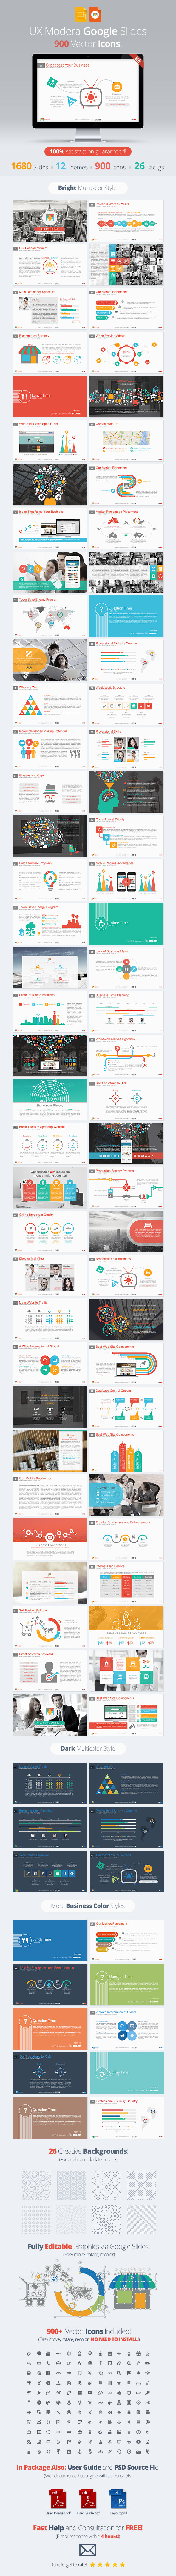 Modera Google Slides Presentation Template - Google Slides Presentation Templates